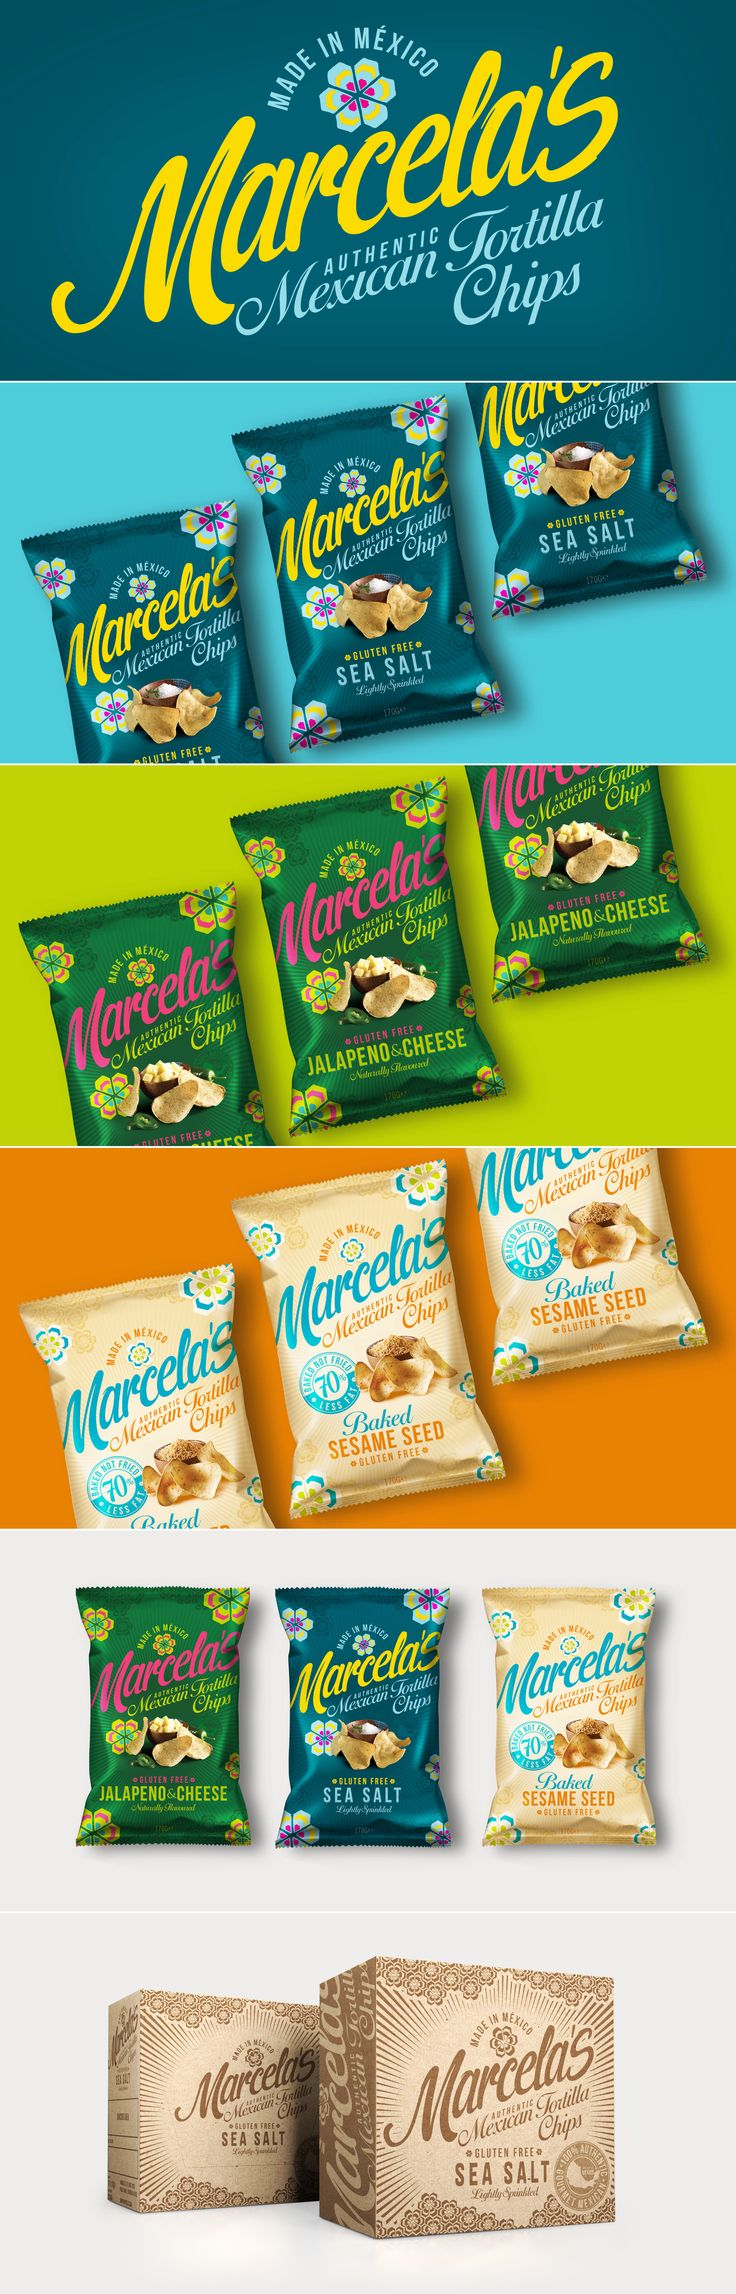 Marcela Flores Mexican Tortilla Chip Packaging designed by Design Happy, a strategic packaging & branding design agency based in Kingston Upon Thames, UK. http://www.designhappy.co.uk